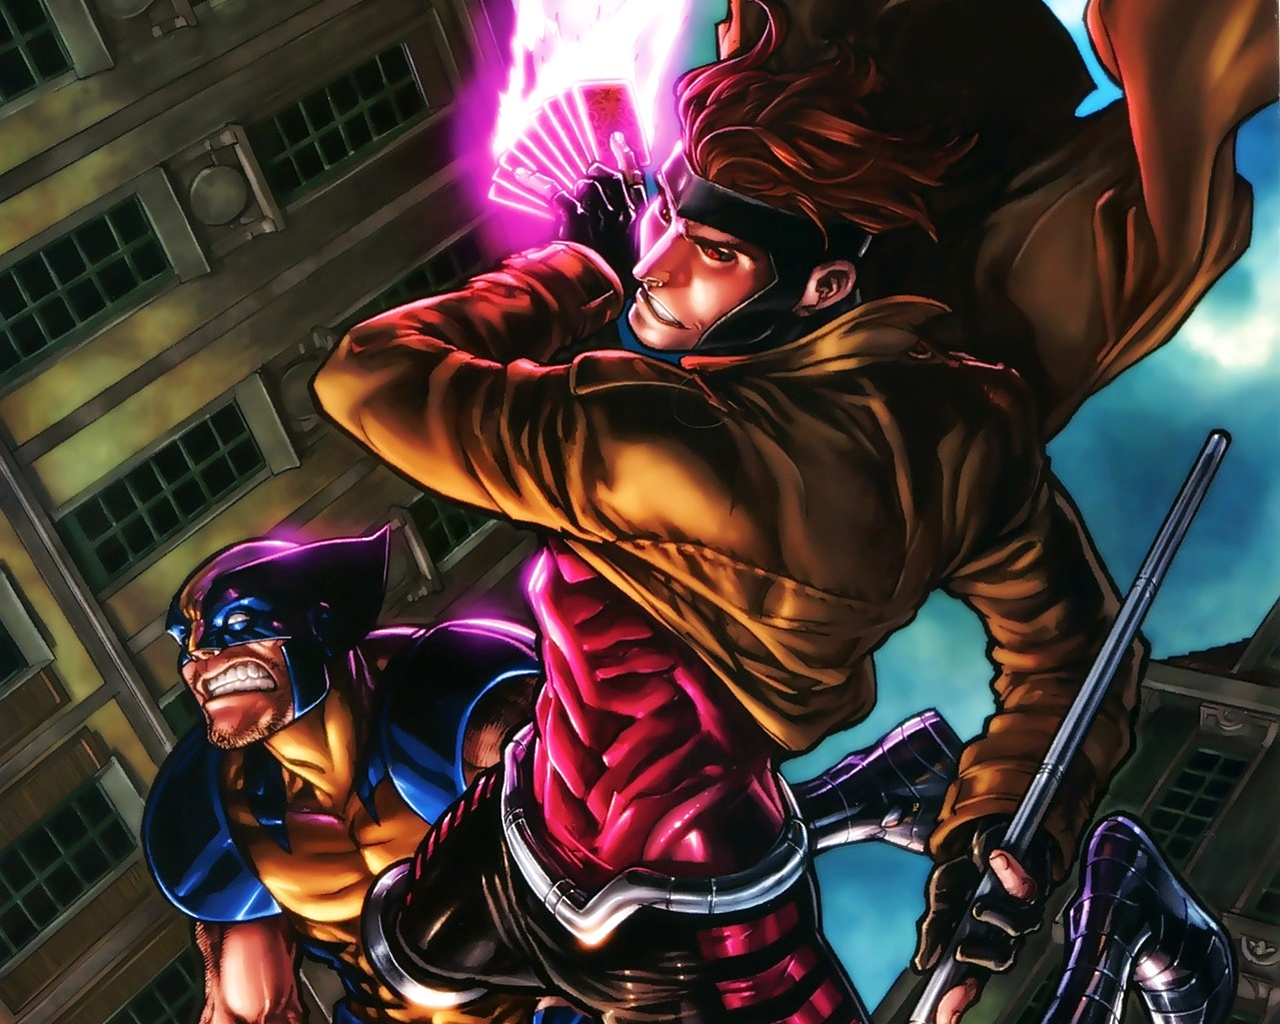 Gambit Wallpaper and Background Image 1280x1024 ID214413 1280x1024